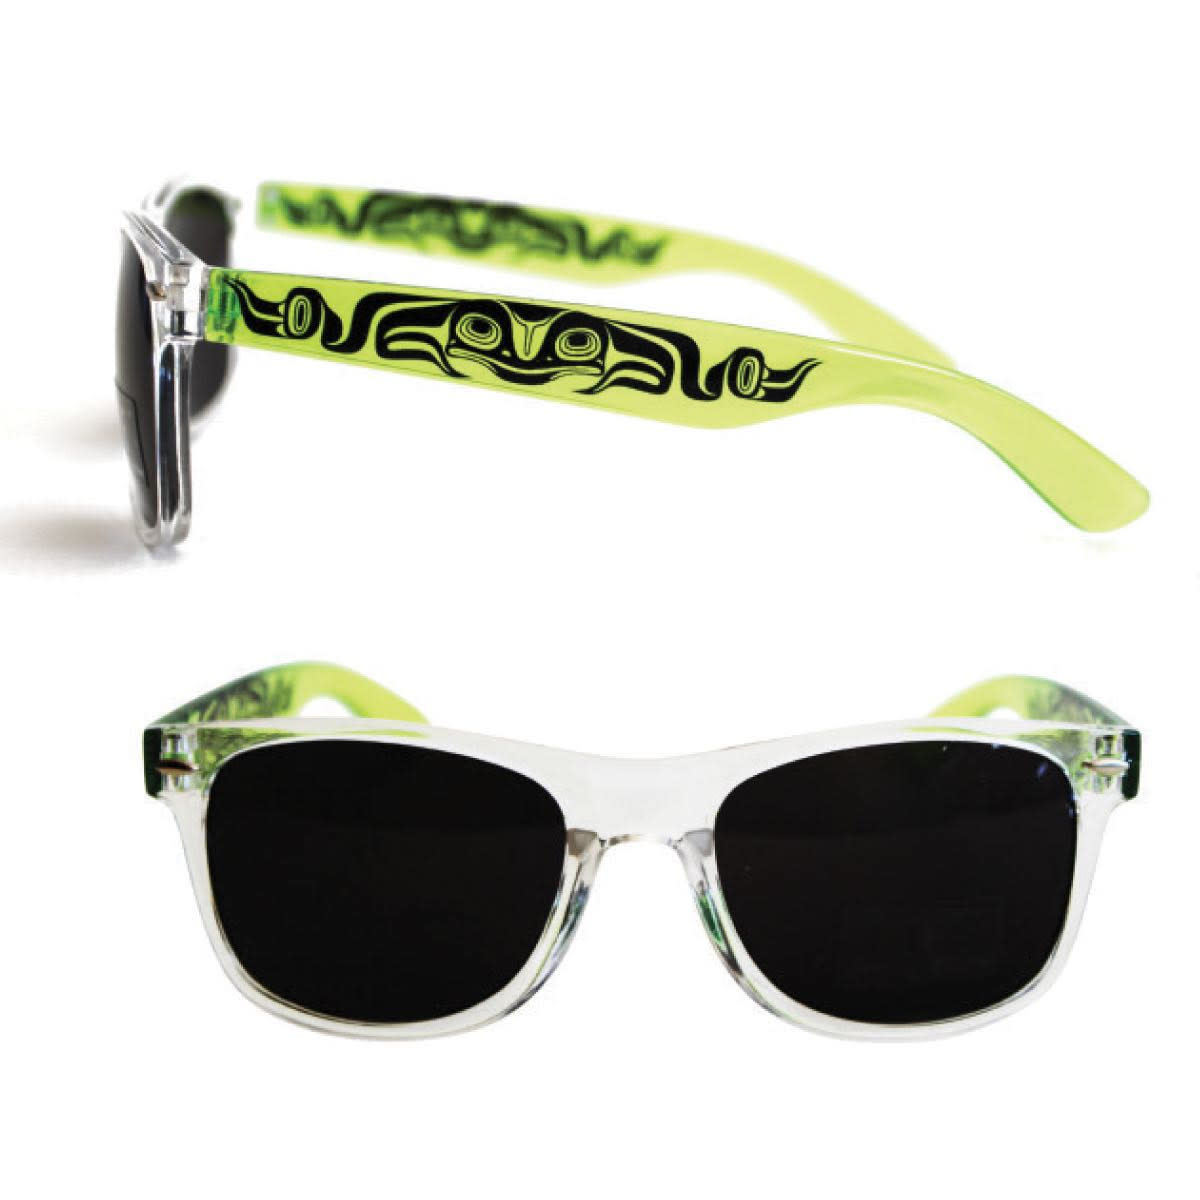 Polarized Sunglasses with Clear Fronts & Designed clear colored sides.-4